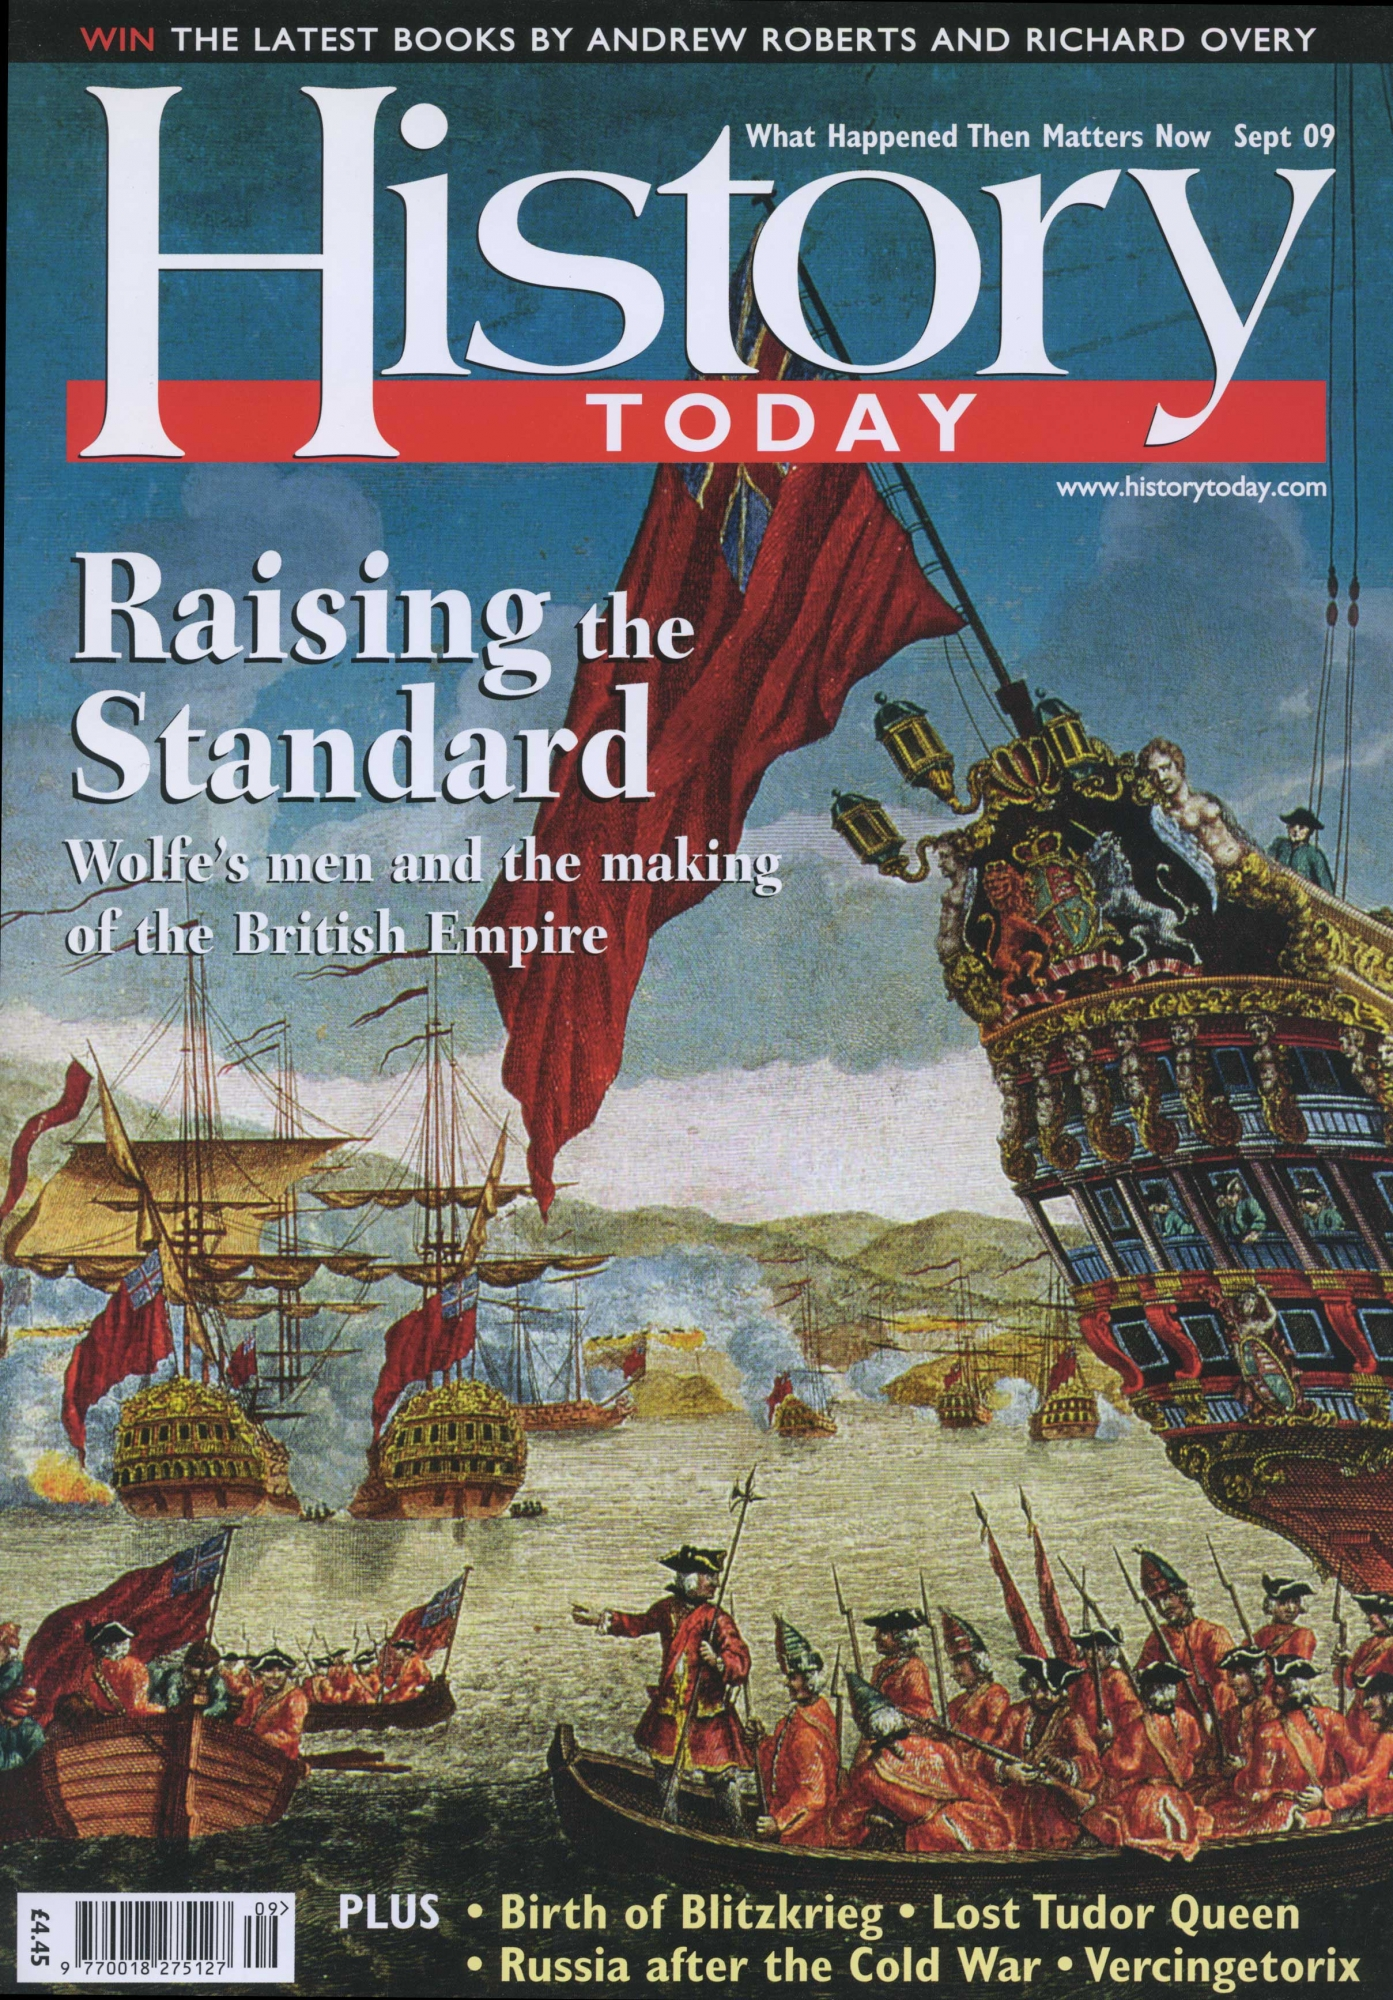 Front cover of the September 2009 issue.